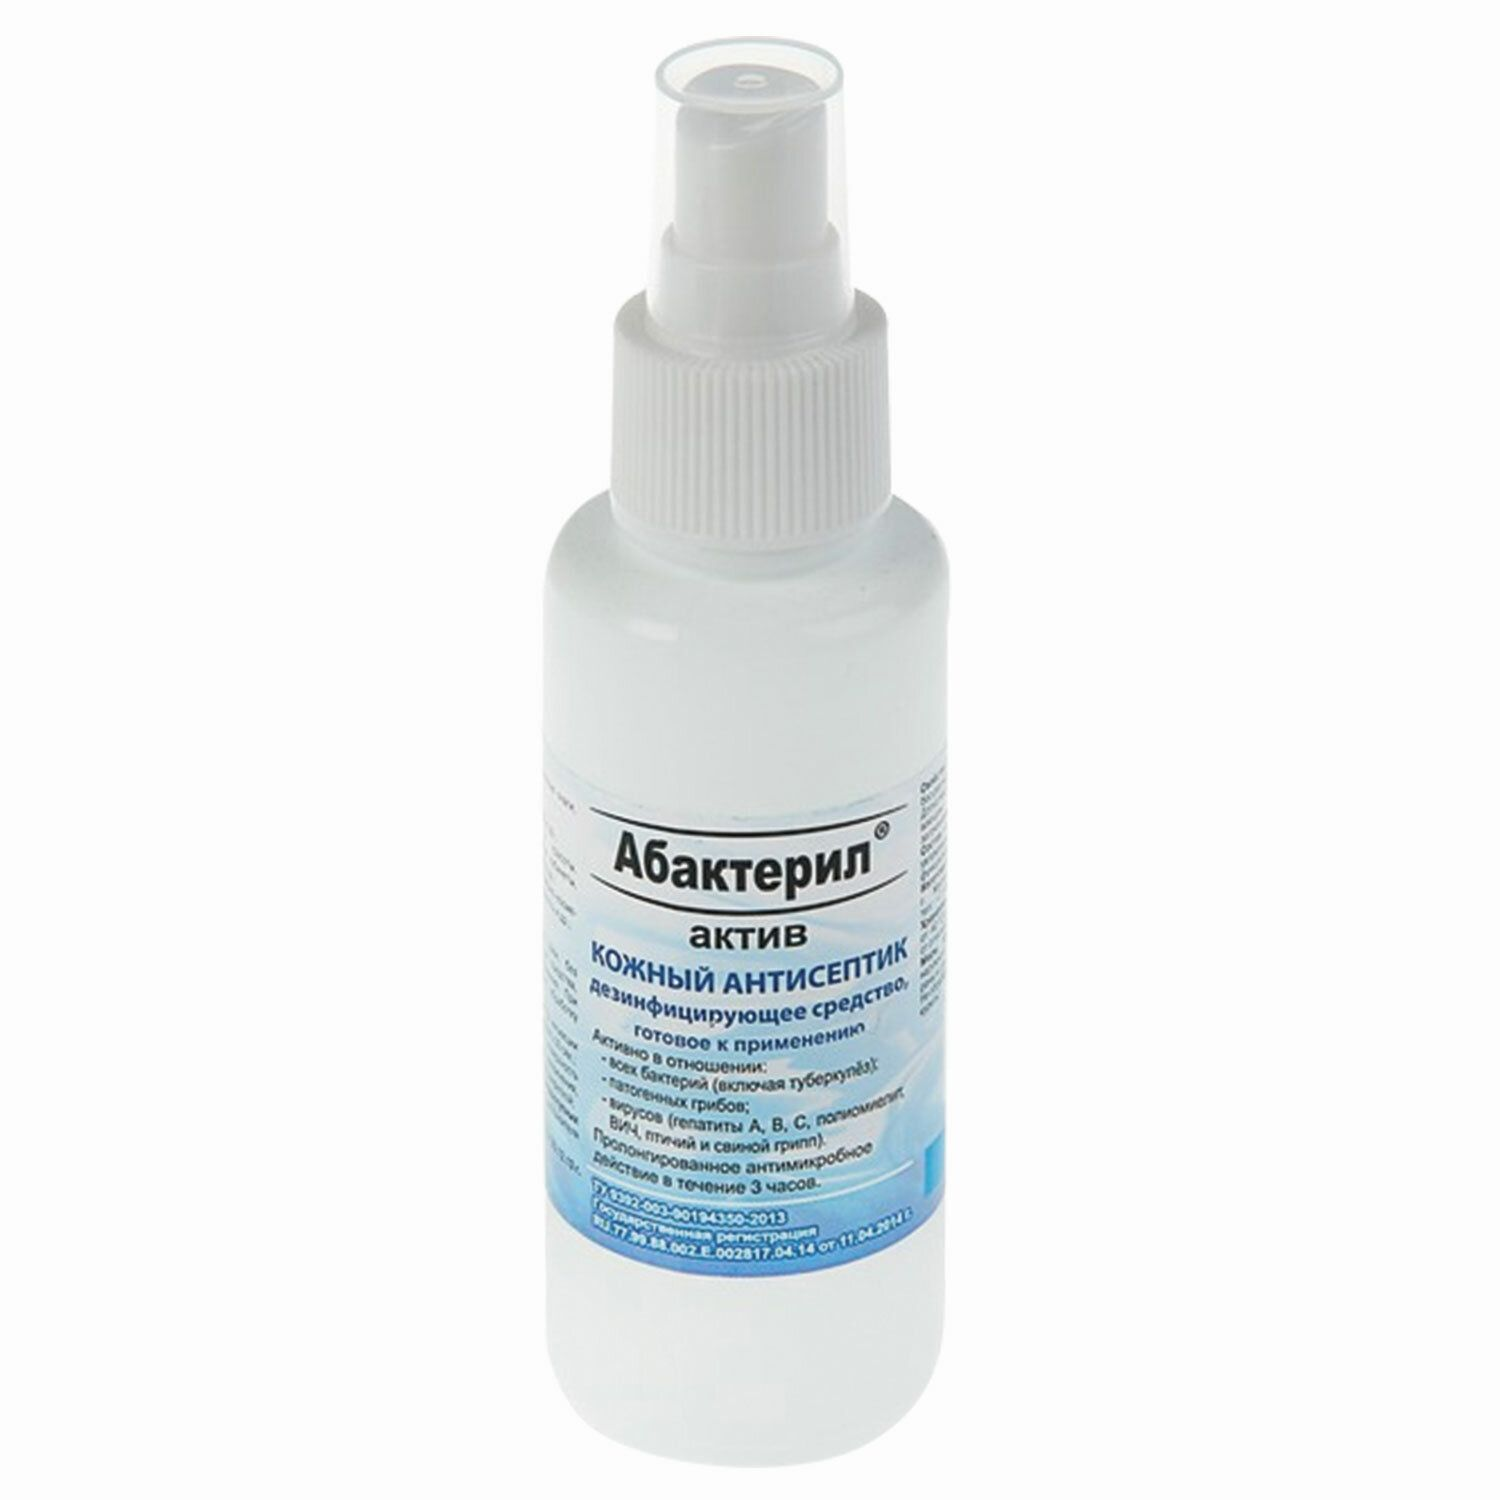 ABACTERIL / Alcohol-based disinfectant skin antiseptic (64%) ACTIVE, ready-made solution, spray, 100 ml